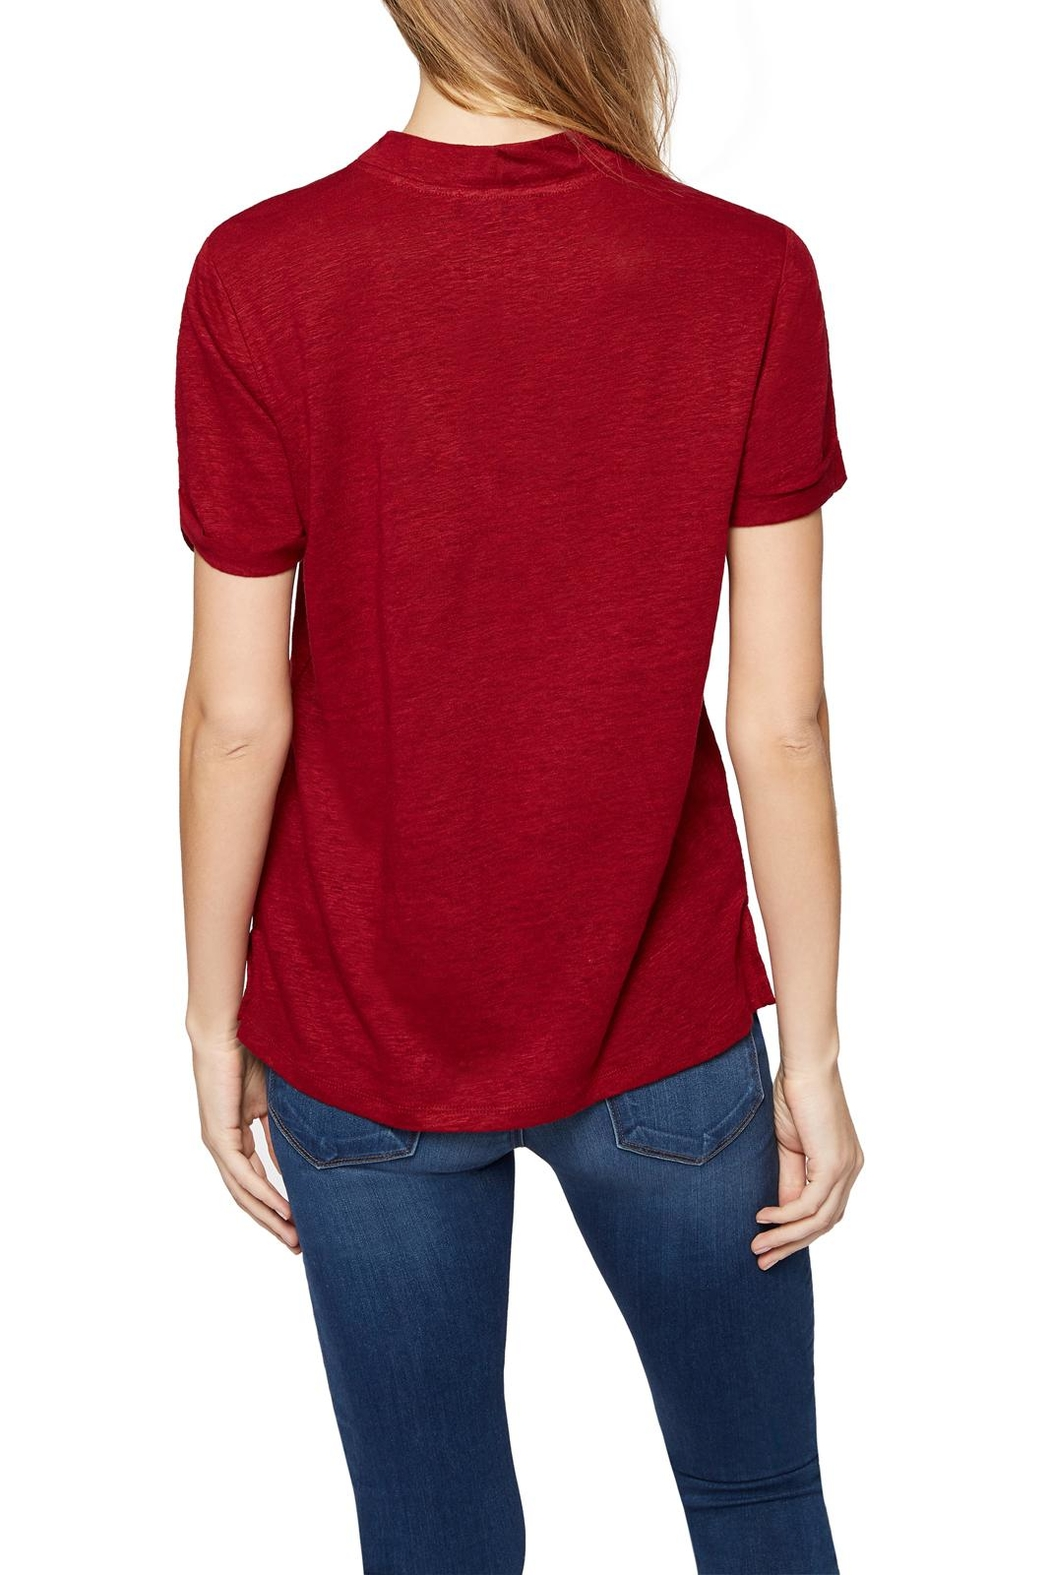 Sanctuary Choker Tee Top - Back Cropped Image